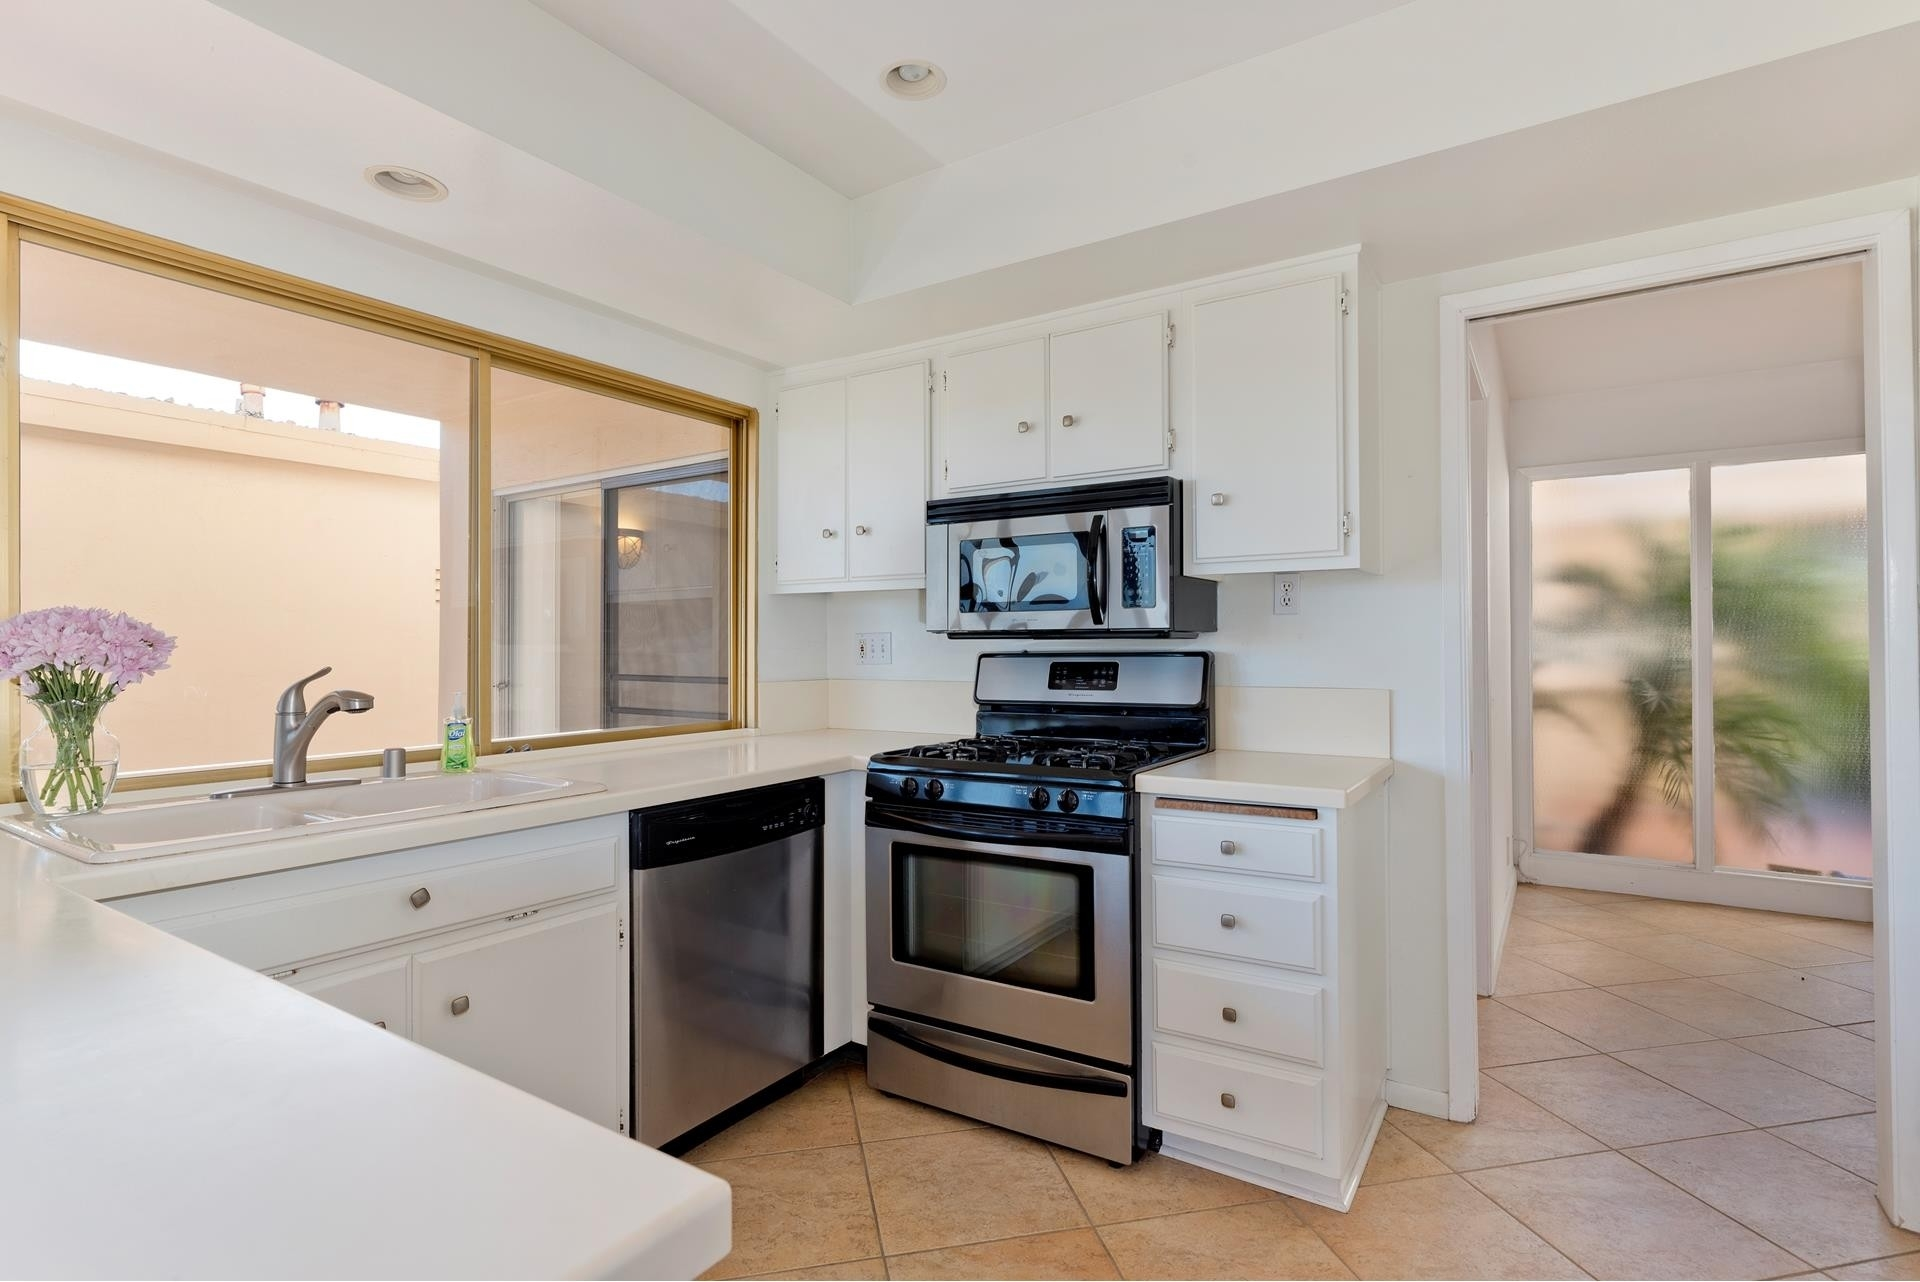 Property at 3808 Vista Campana S , 27 Oceana, Oceanside, CA 92057